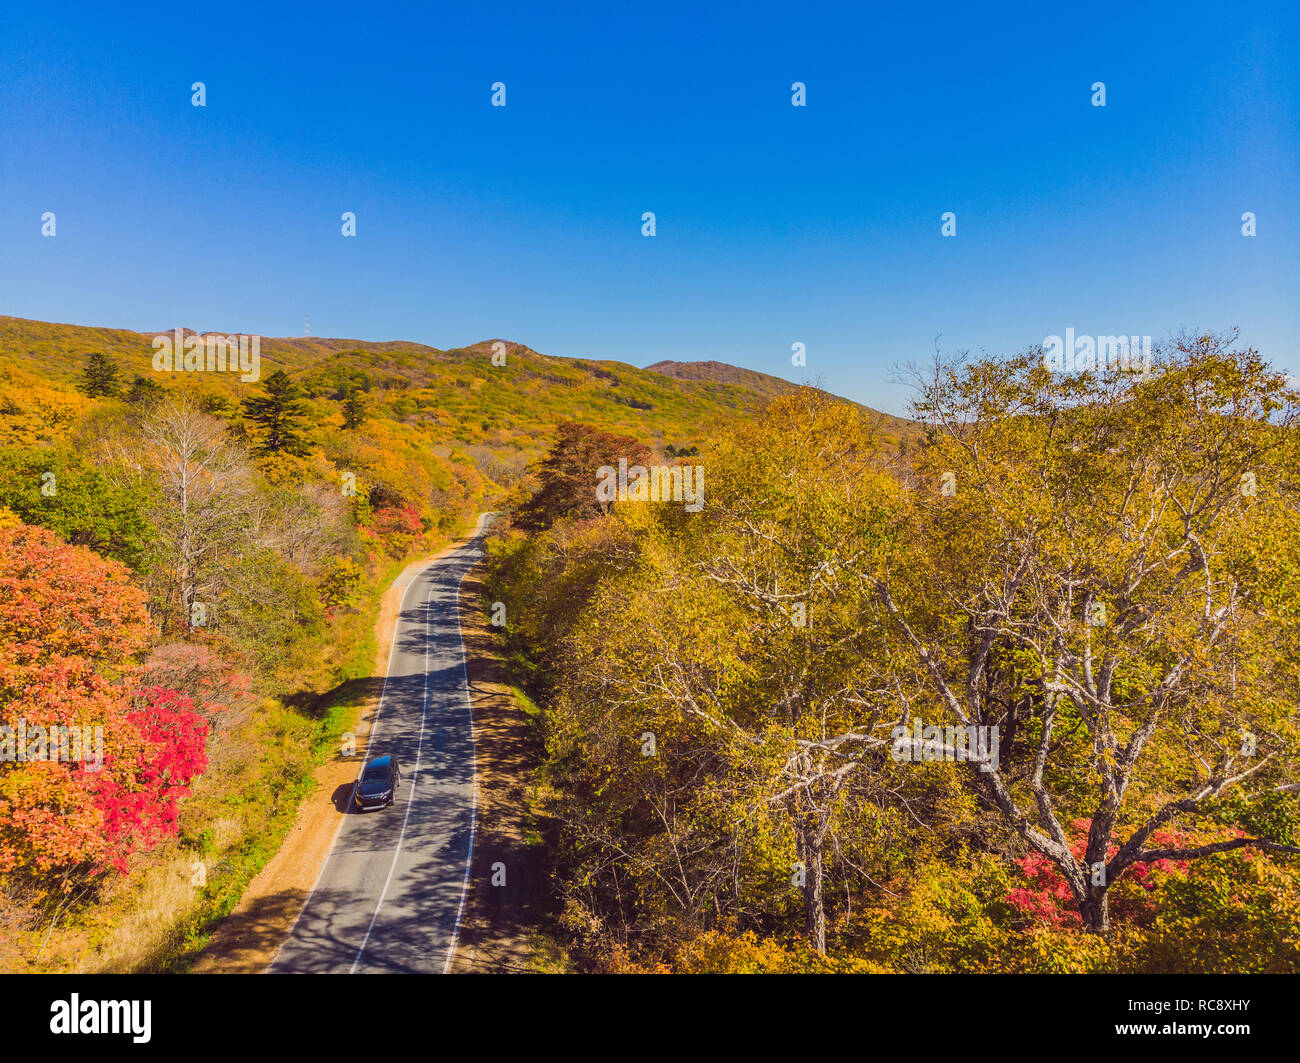 Aerial view of road in beautiful autumn forest at sunset. Beautiful landscape with empty rural road, trees with red and orange leaves. Highway through the park. Top view from flying drone. Nature Stock Photo